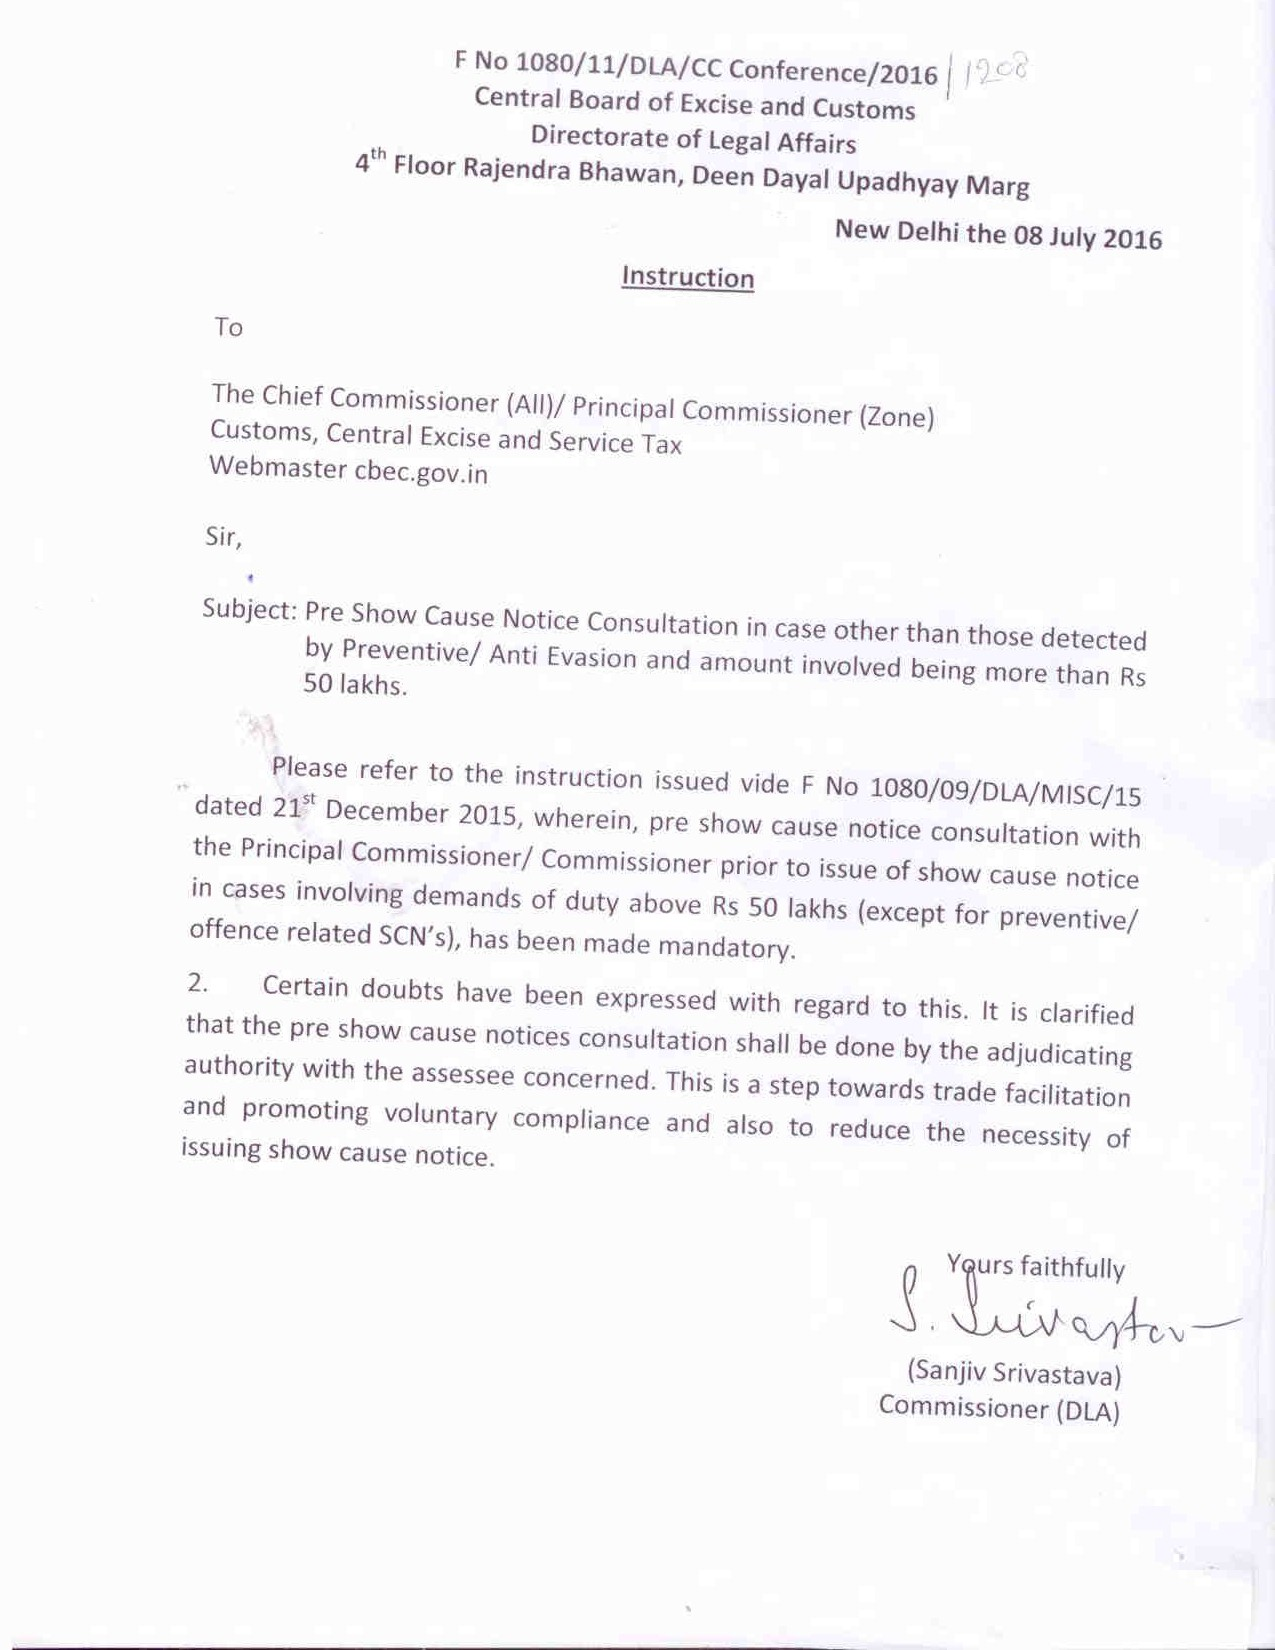 Report on important matters of cbic cause lists heard pre show casue notice consultation in case other than those detected by preventive anti evasion and amount involved being more than rs 50 lakhs spiritdancerdesigns Images